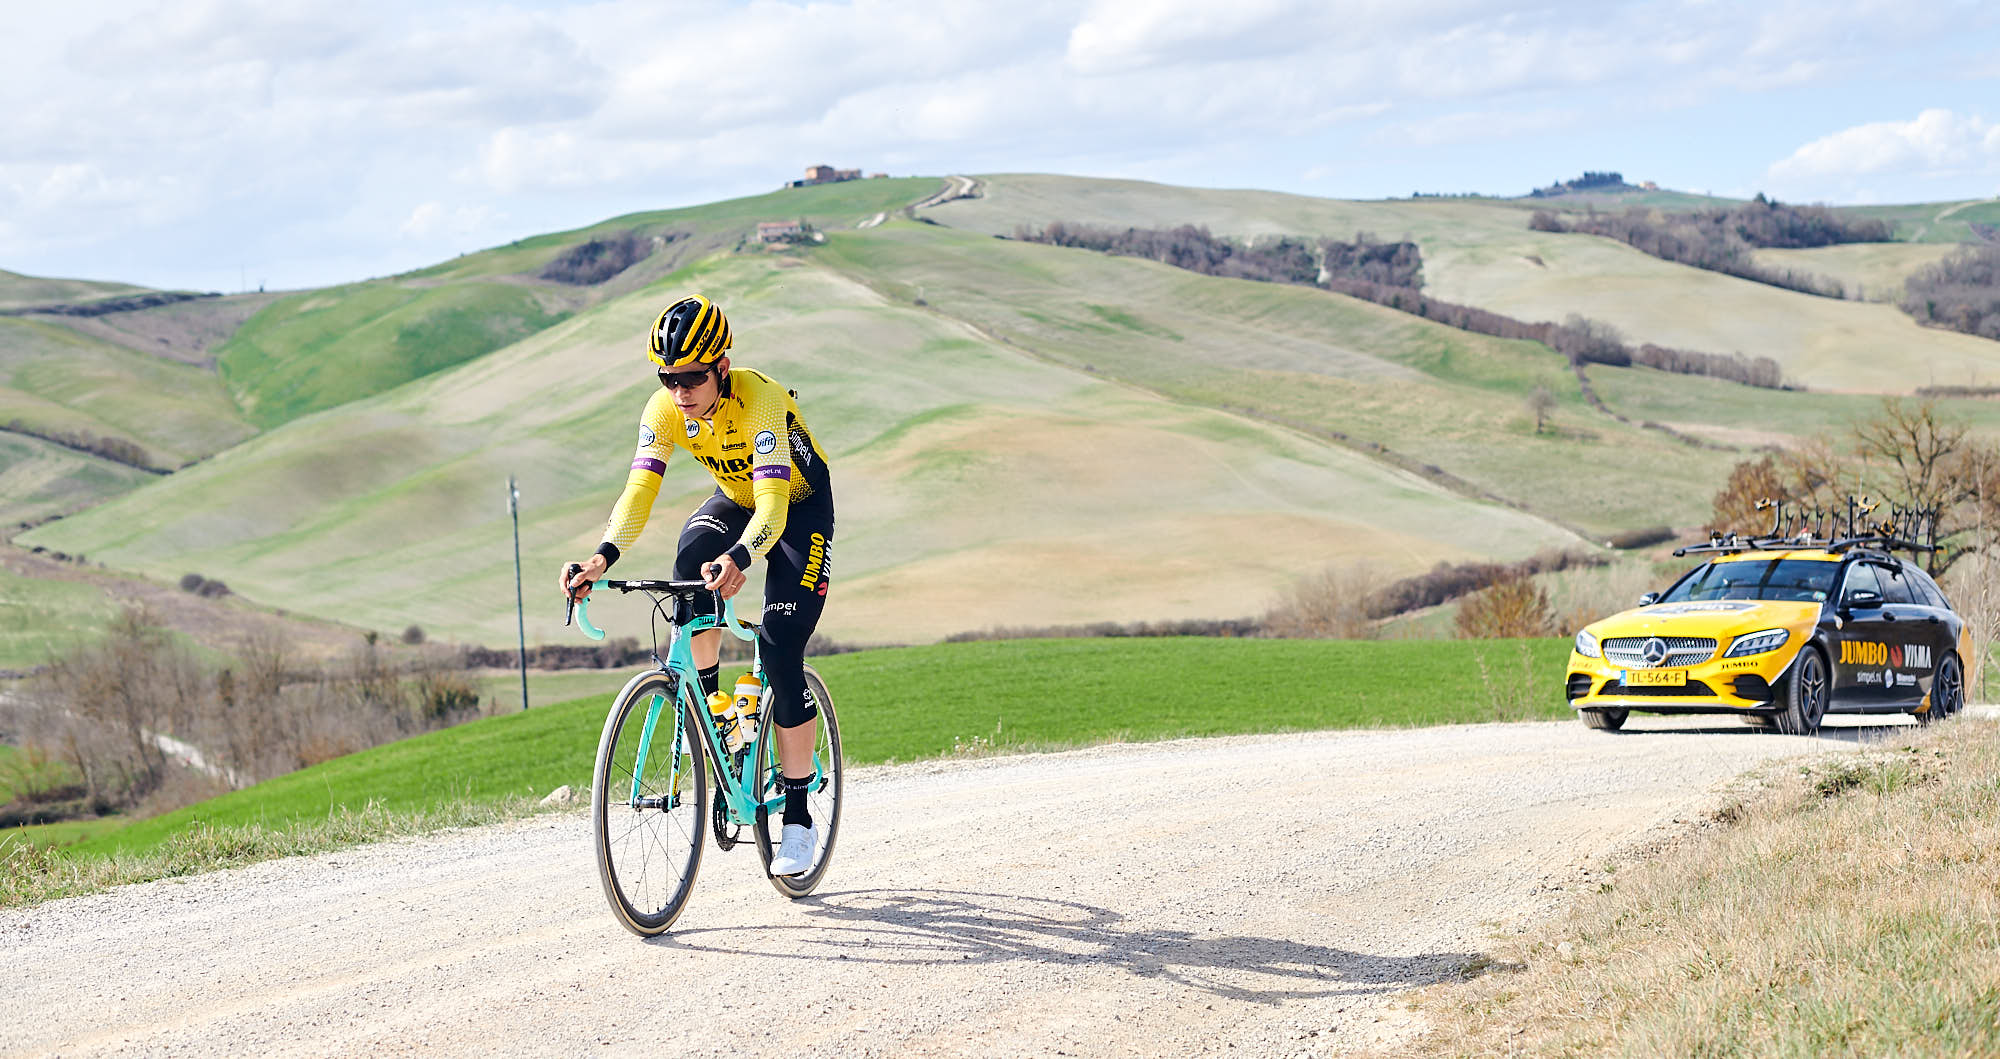 Wout van Aert during training for Strade Bianche